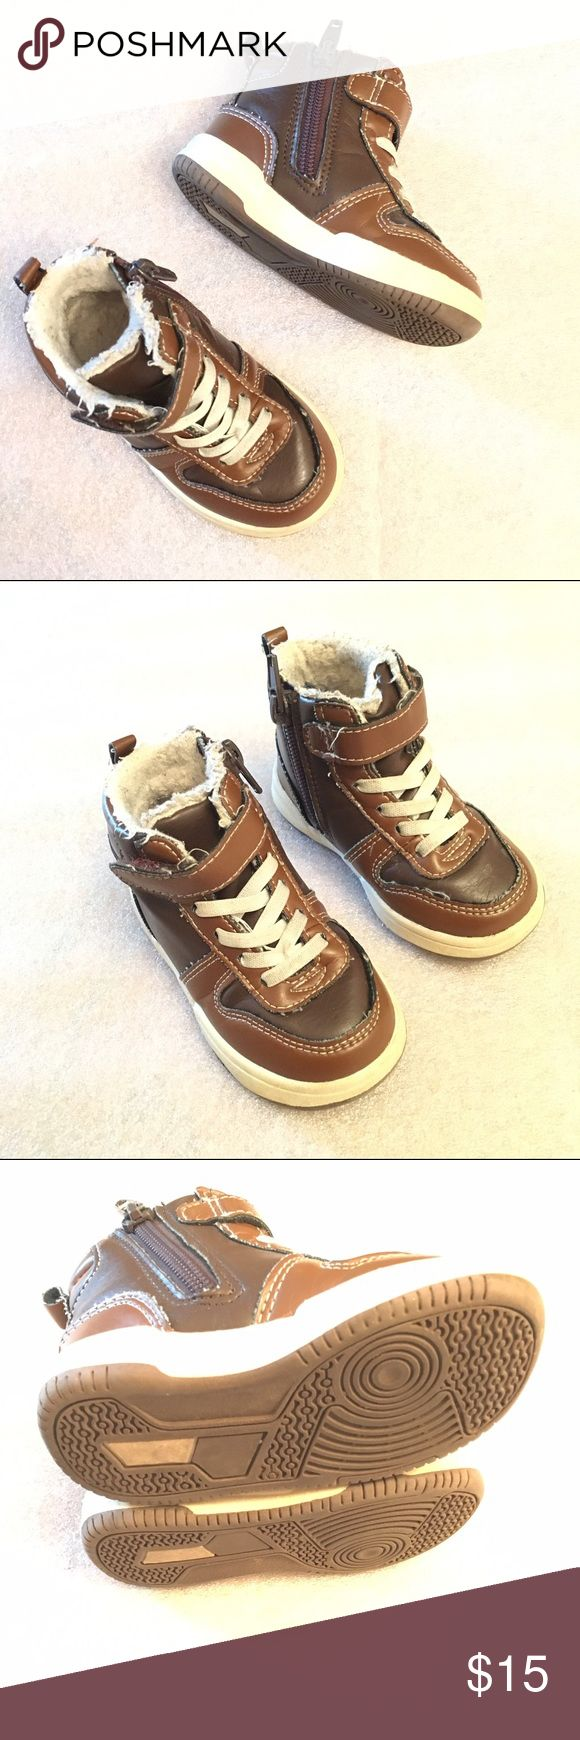 Baby high top boots Size 4-5 GUC H&M Shoes Boots